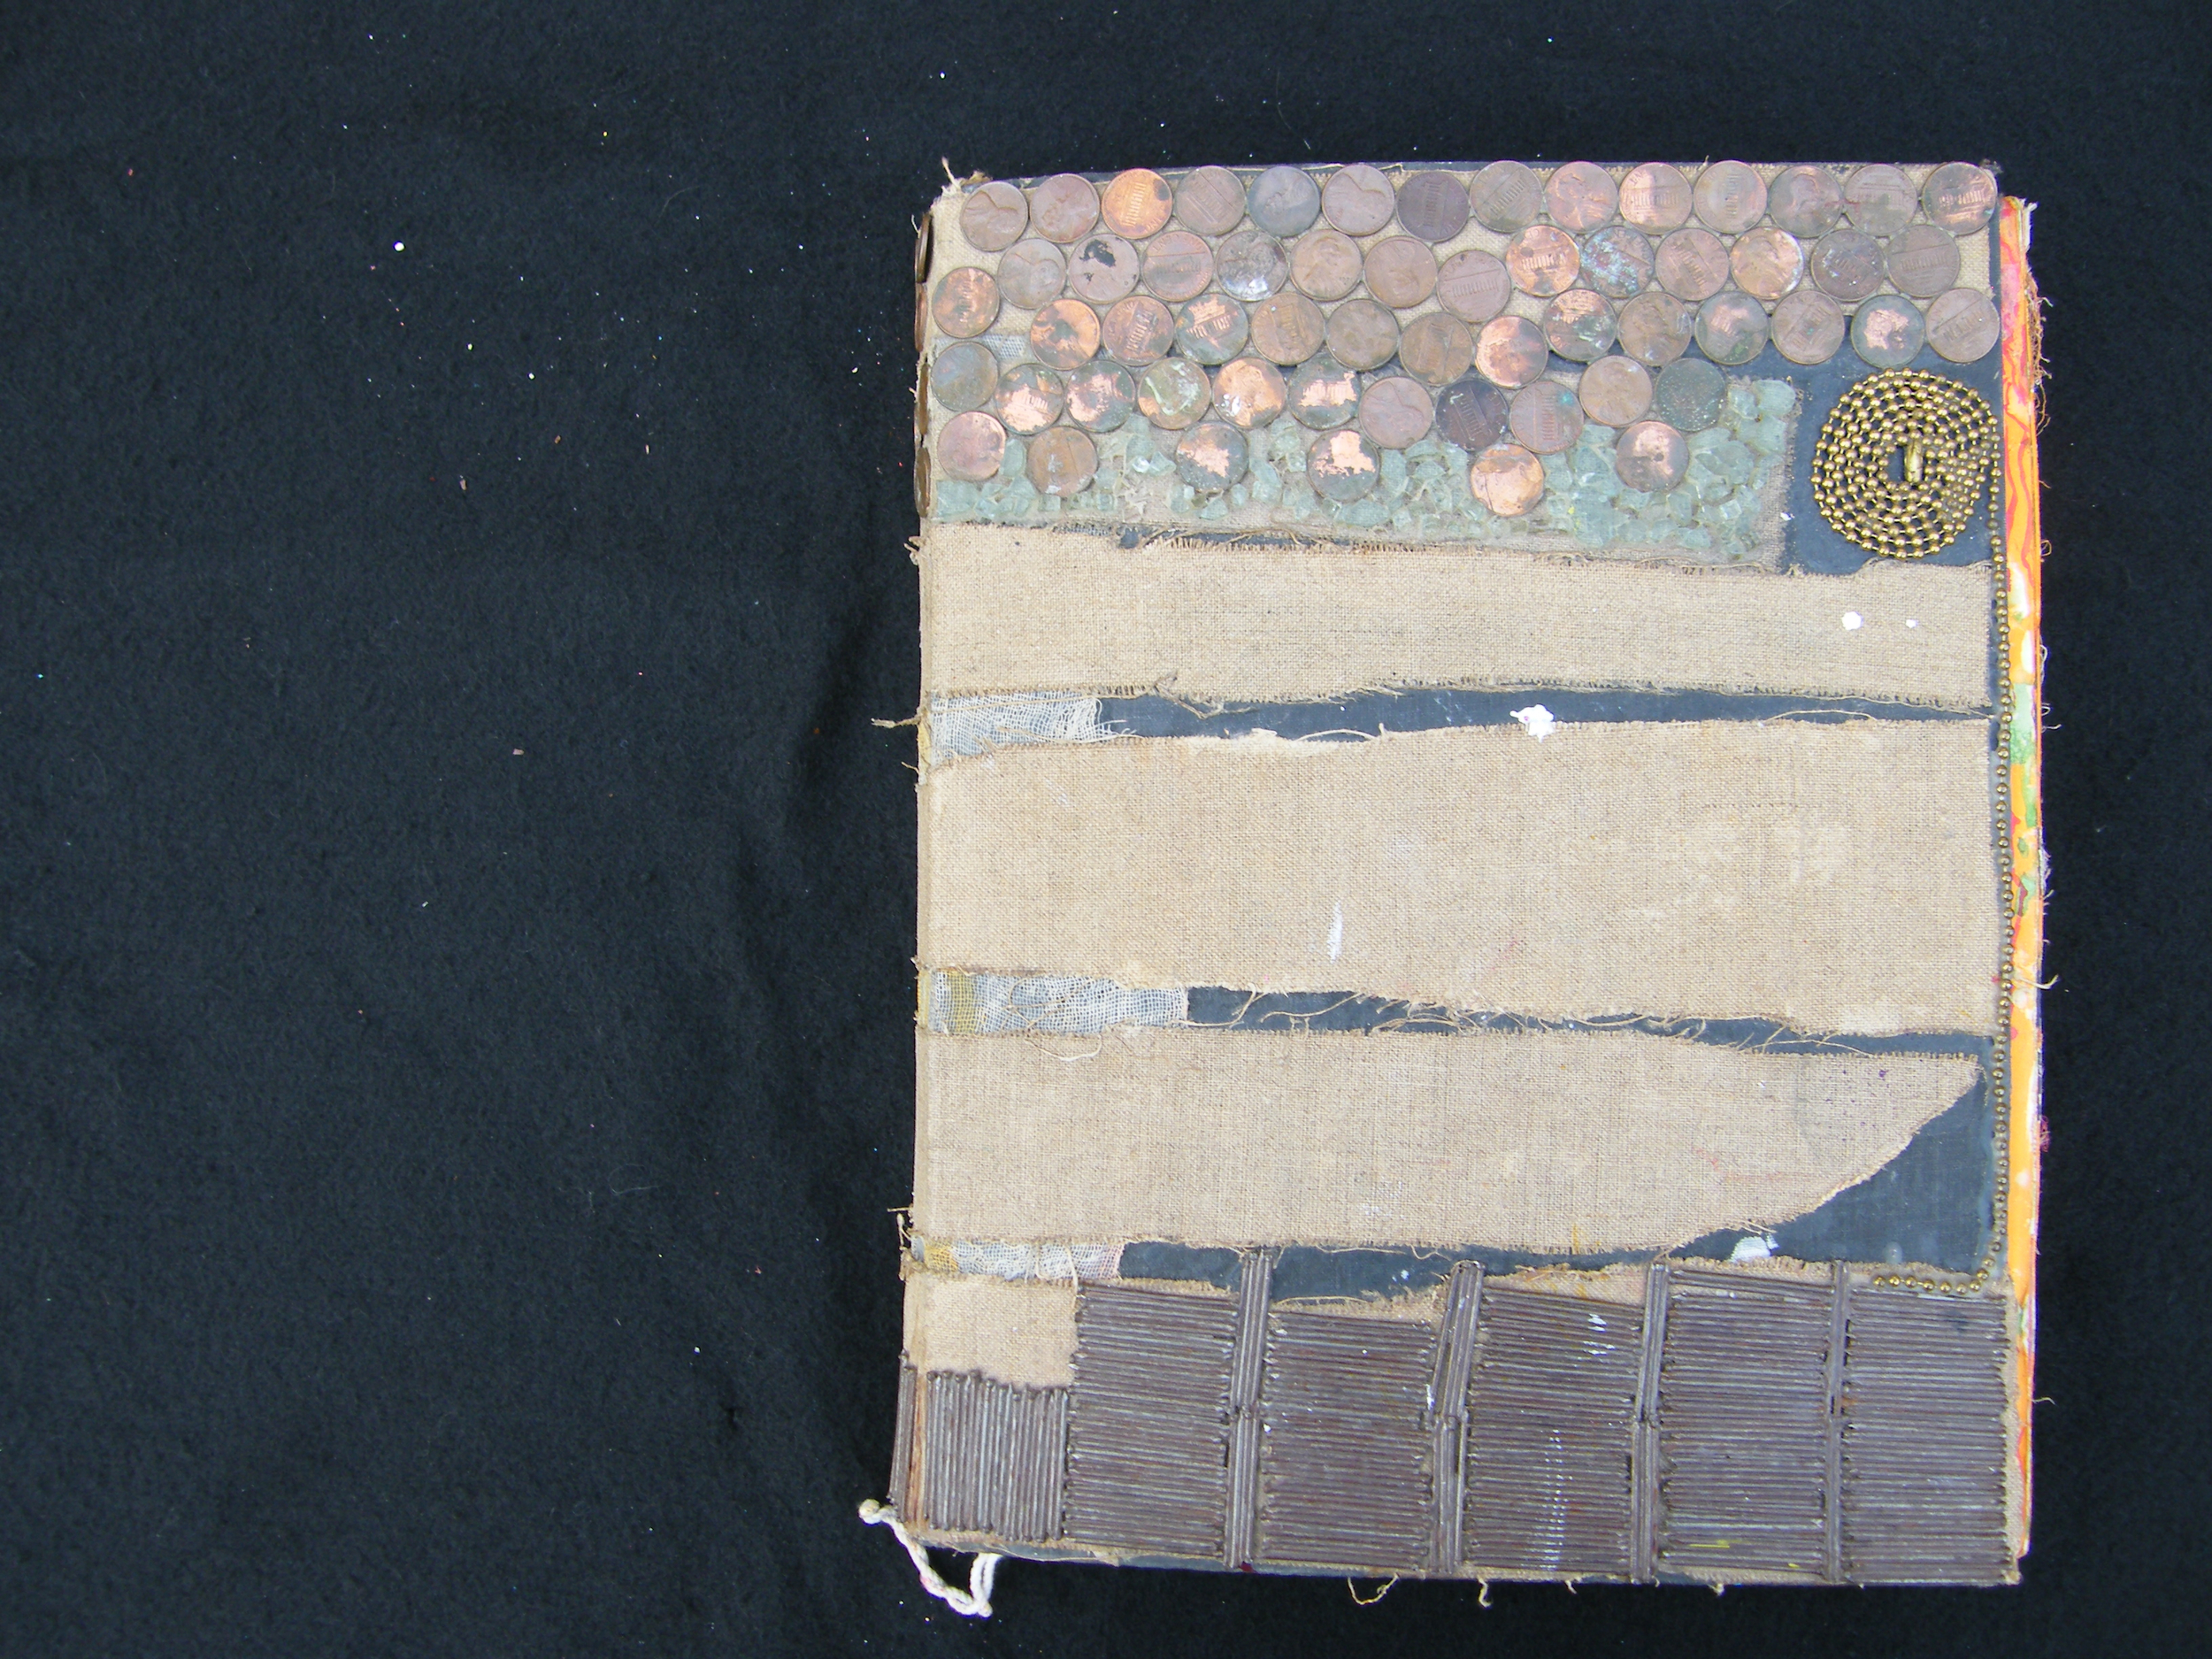 Scale: 14 ¼ inches H X 12 inches W X 2 ½ inches D